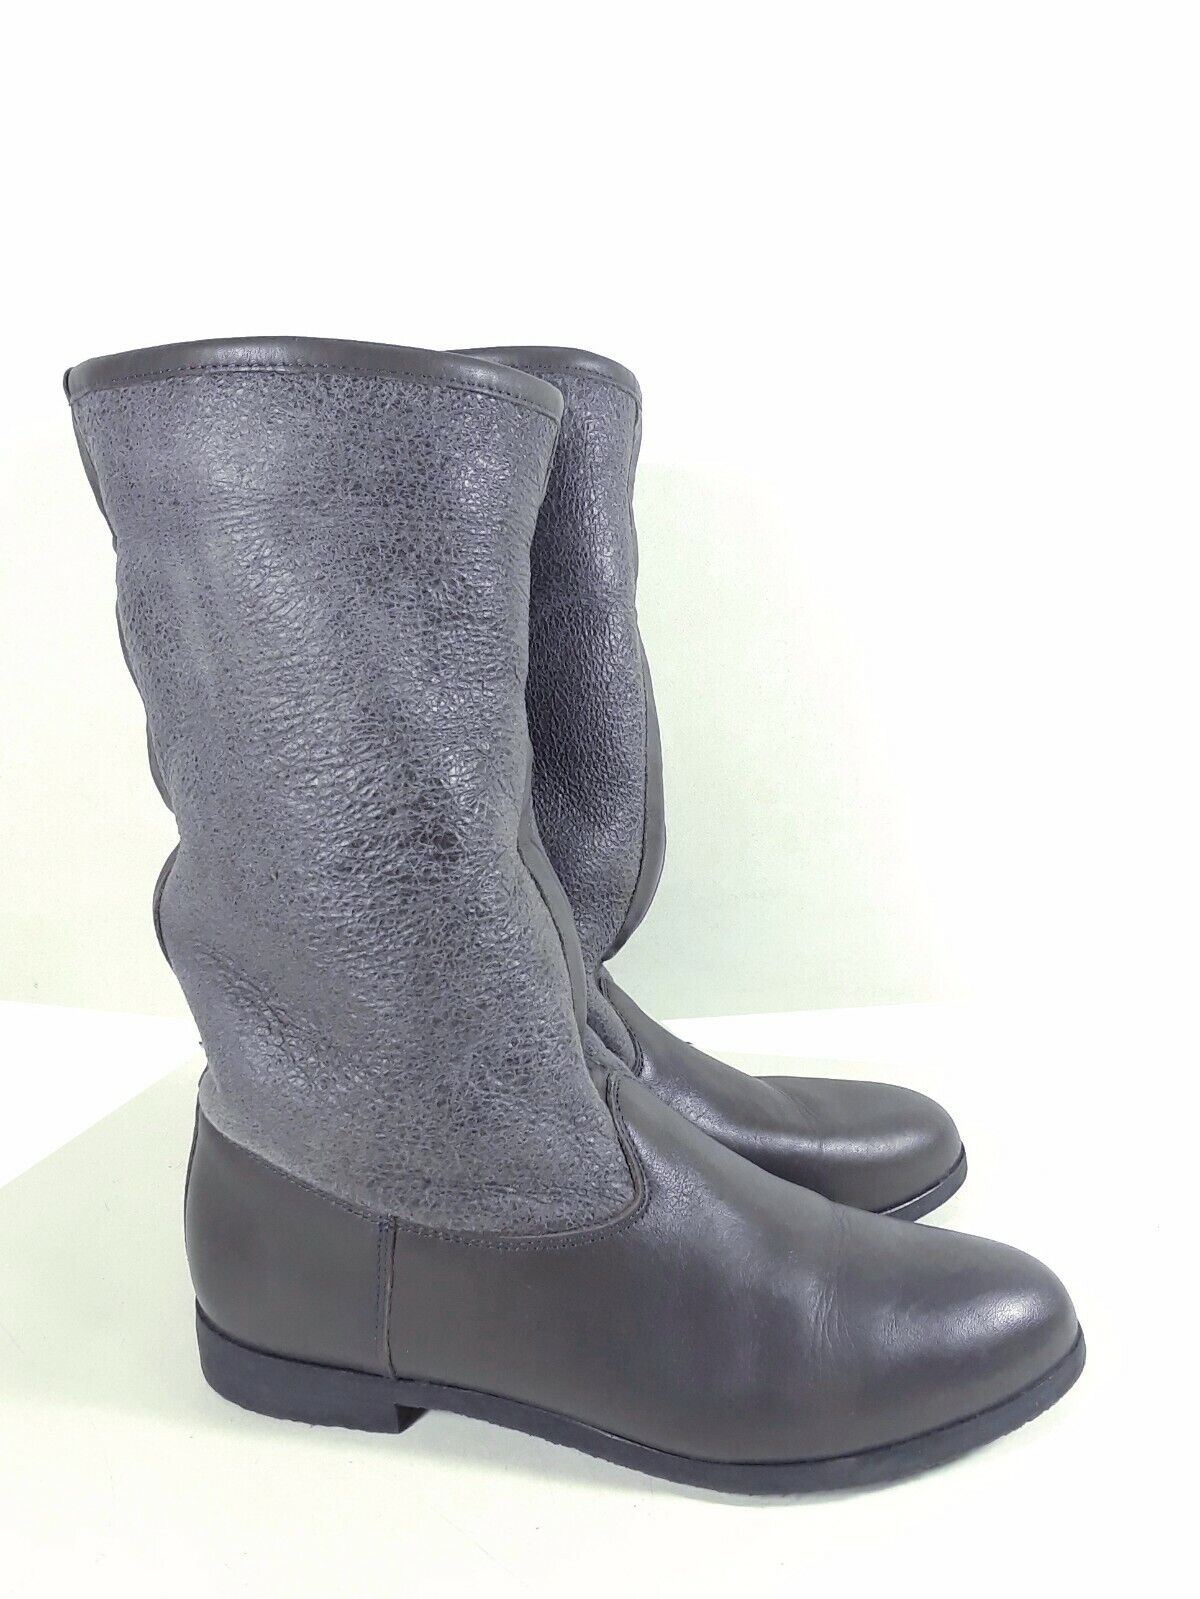 Anthropologie KMB shearling Leather Boots Grey Made in Spain Size 38 EU Sku S7